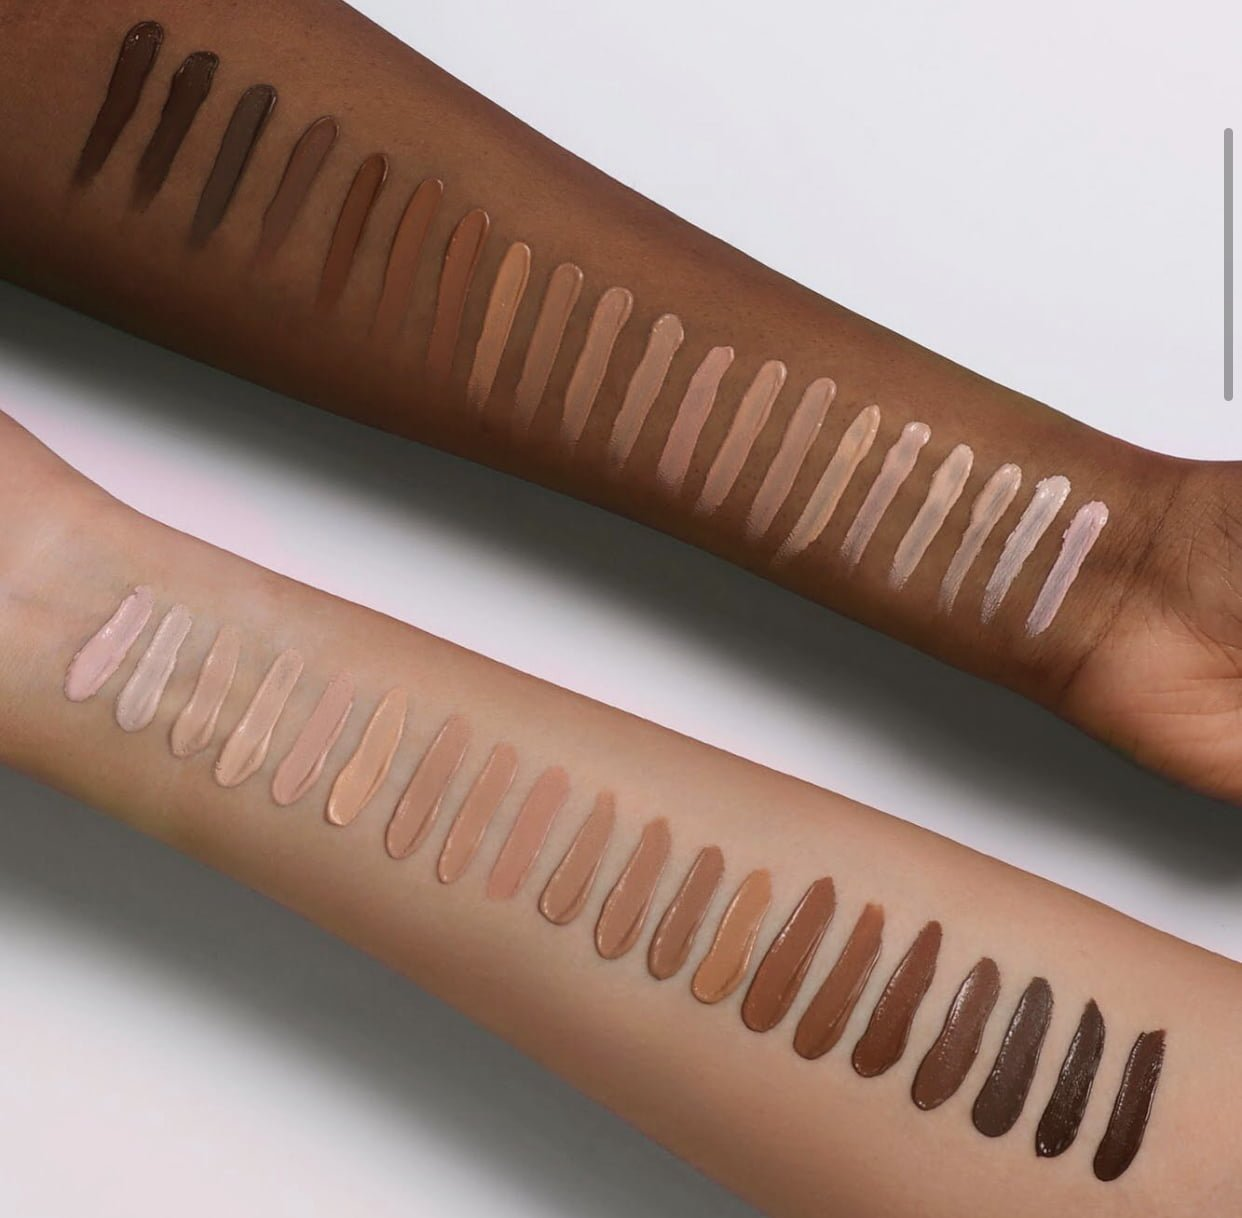 NEW Collection Lasting Perfection Concealer Formula & Shades!